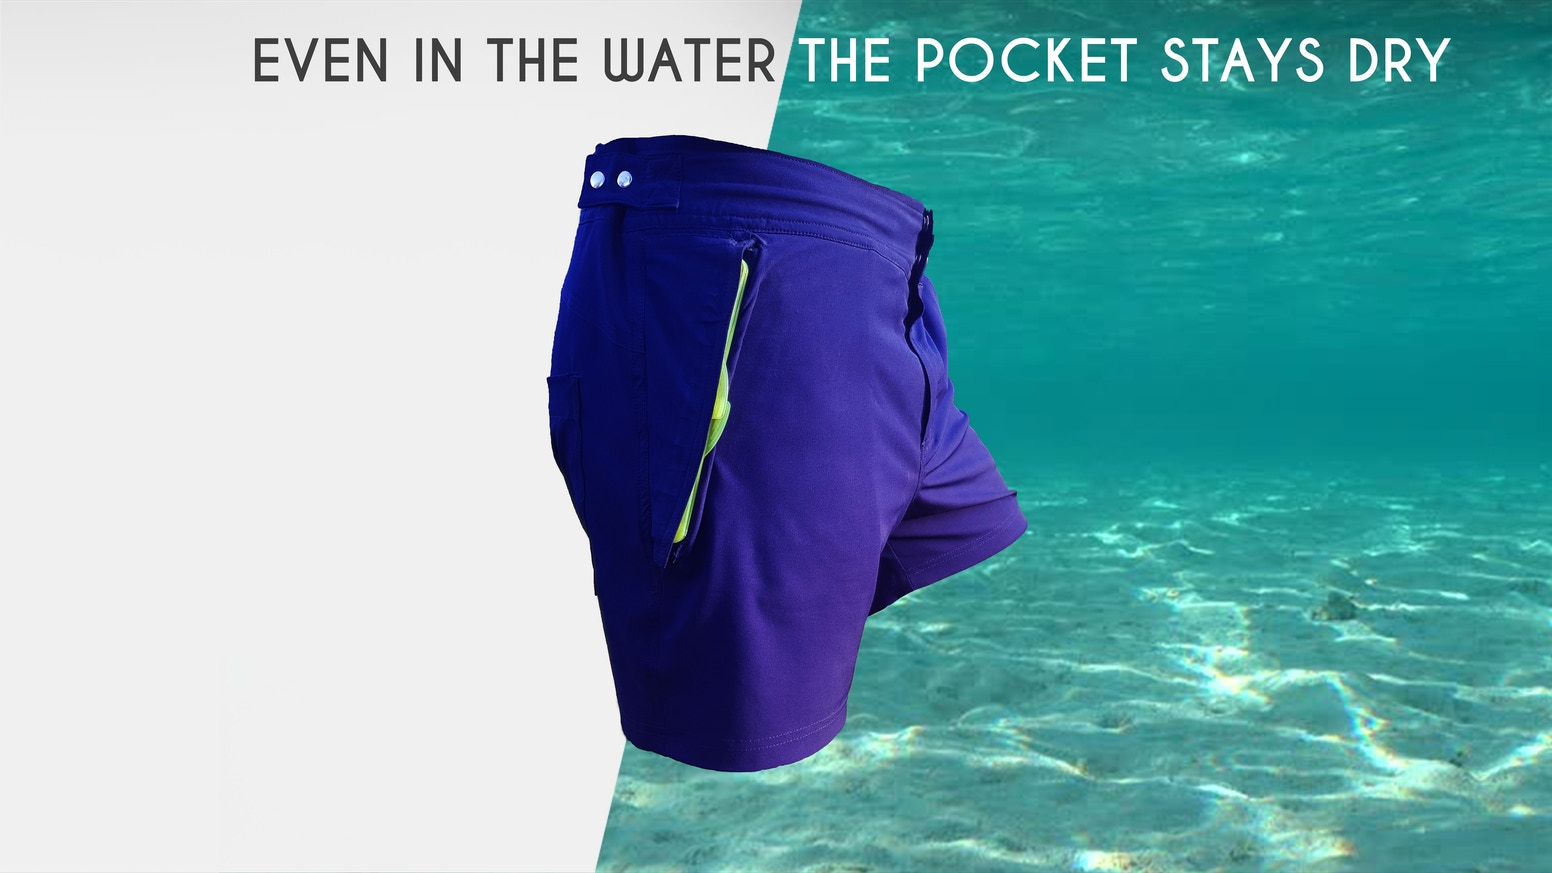 Everything in Your Pocket Stays Dry, 30m/100ft underwater! Be ready for any Adventure. Magnetic-Tech. 9+ features